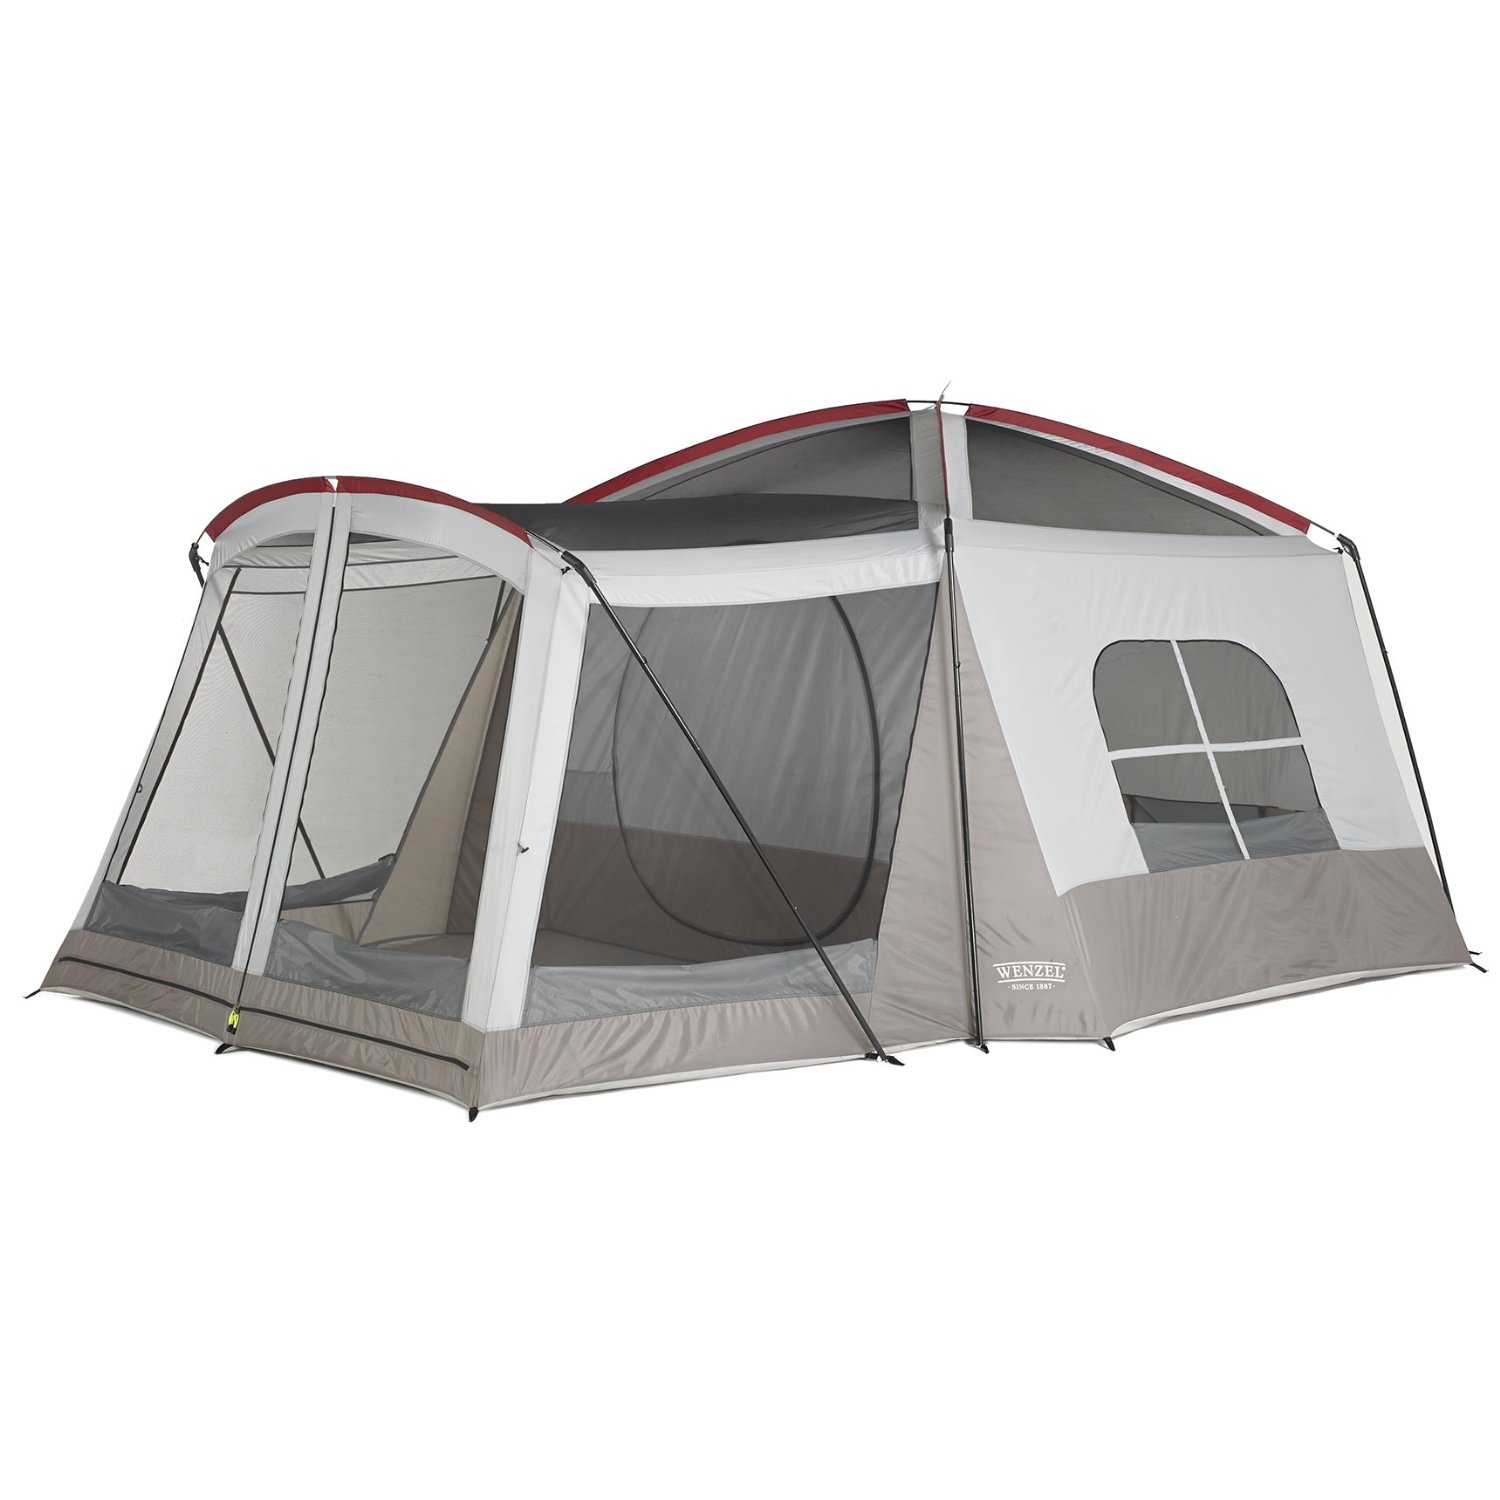 0734af33b87 12 of the Biggest and Best Tents for Large Families